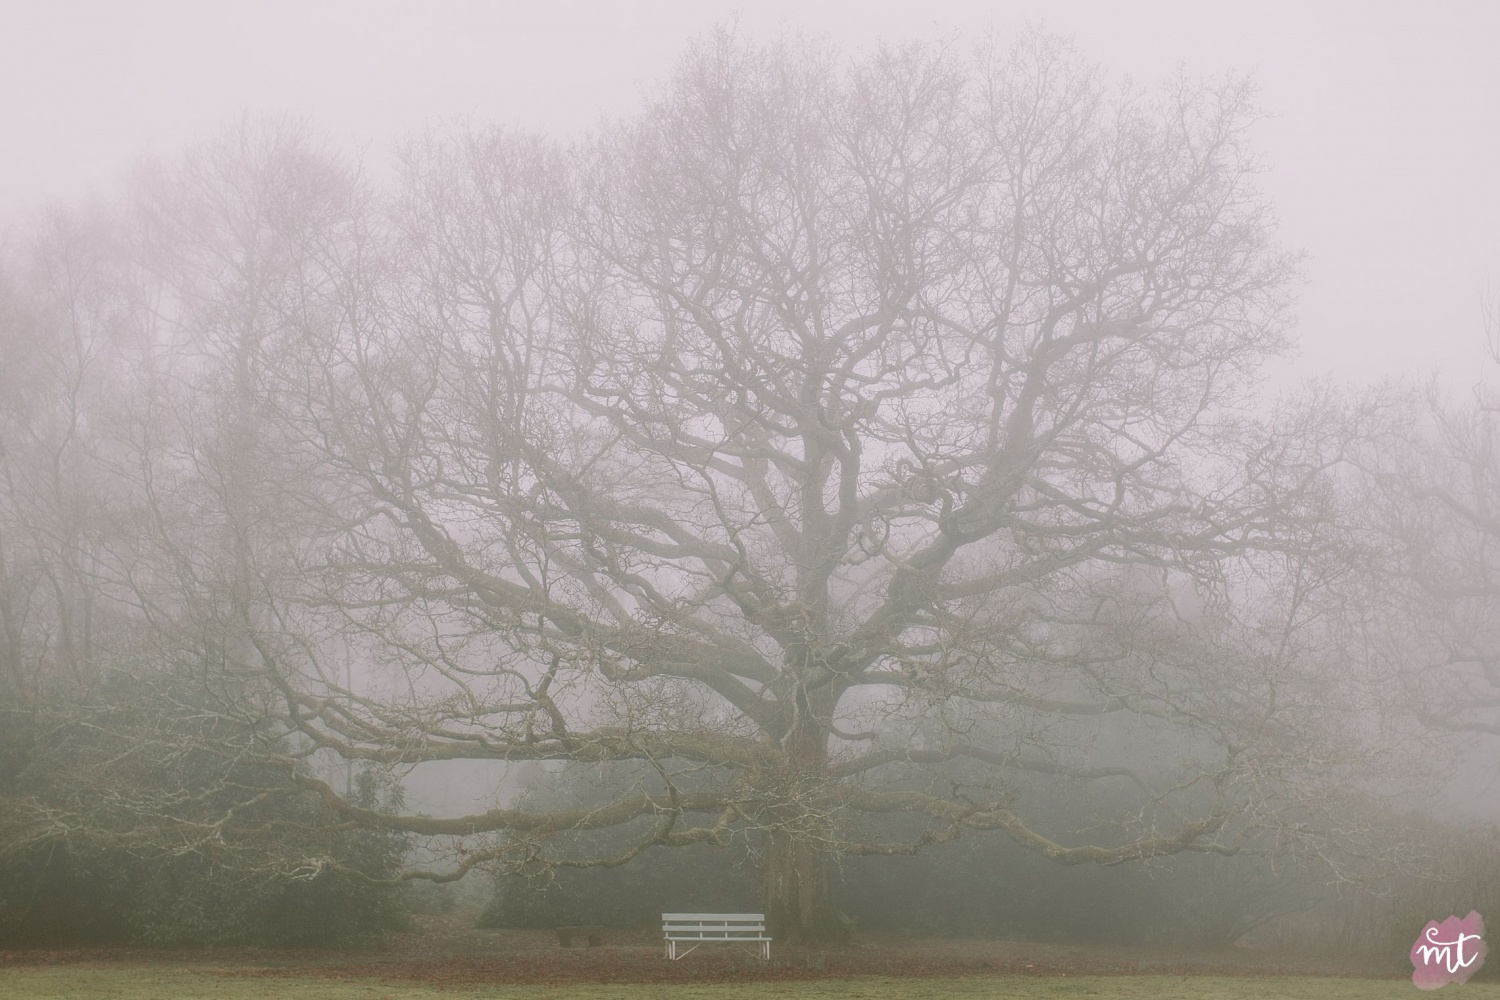 Seasons, Winter, Natural Light, UK Photographer, Real Life, Mother Nature, Fog, Foggy, Misty